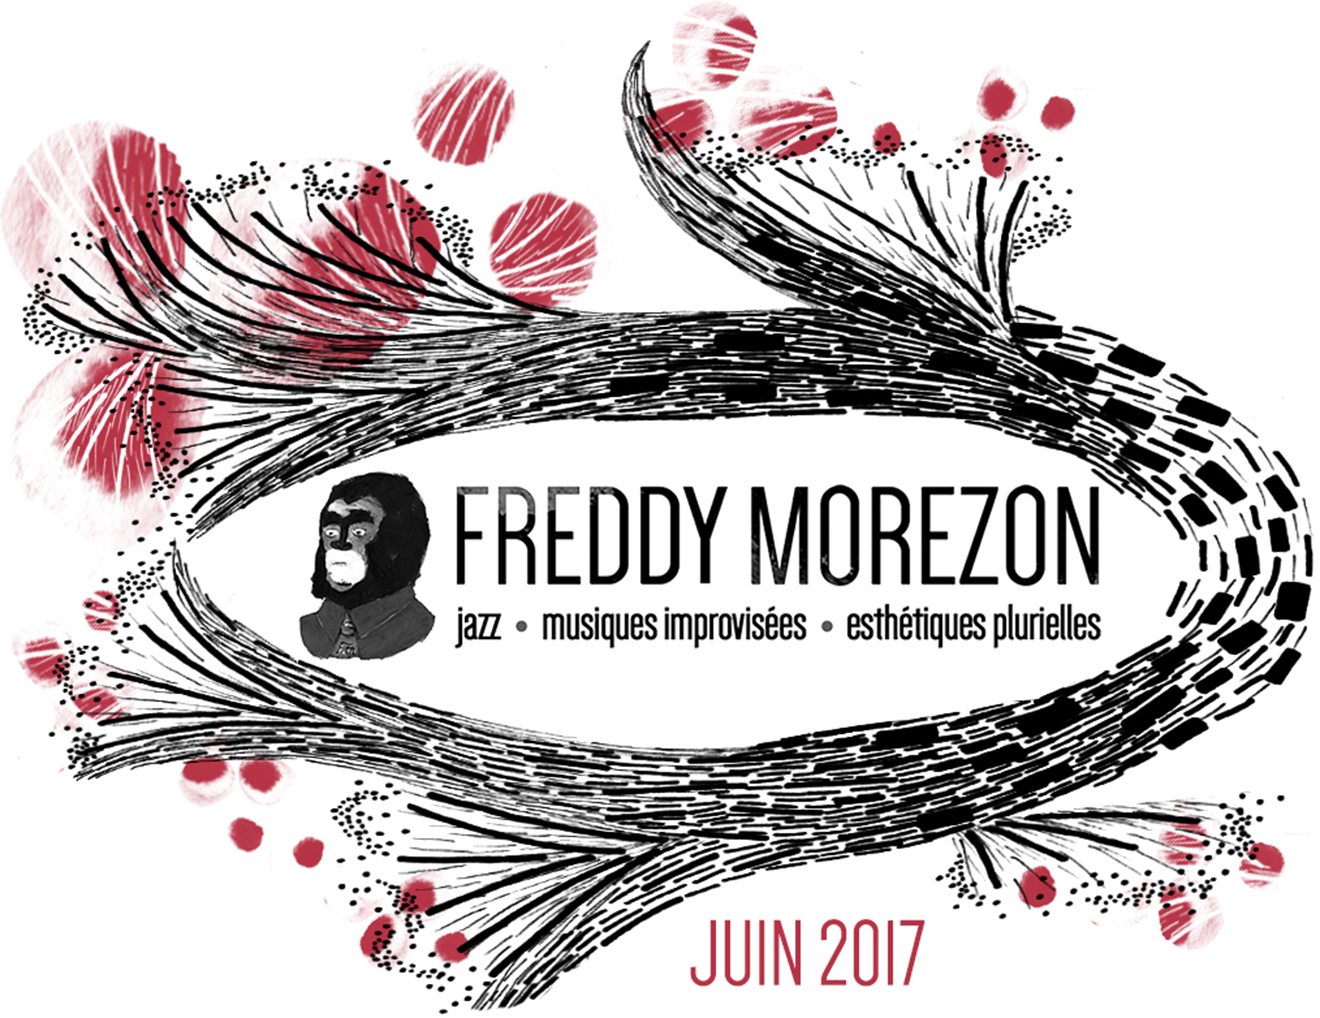 FREDDY MOREZON - juin 2017